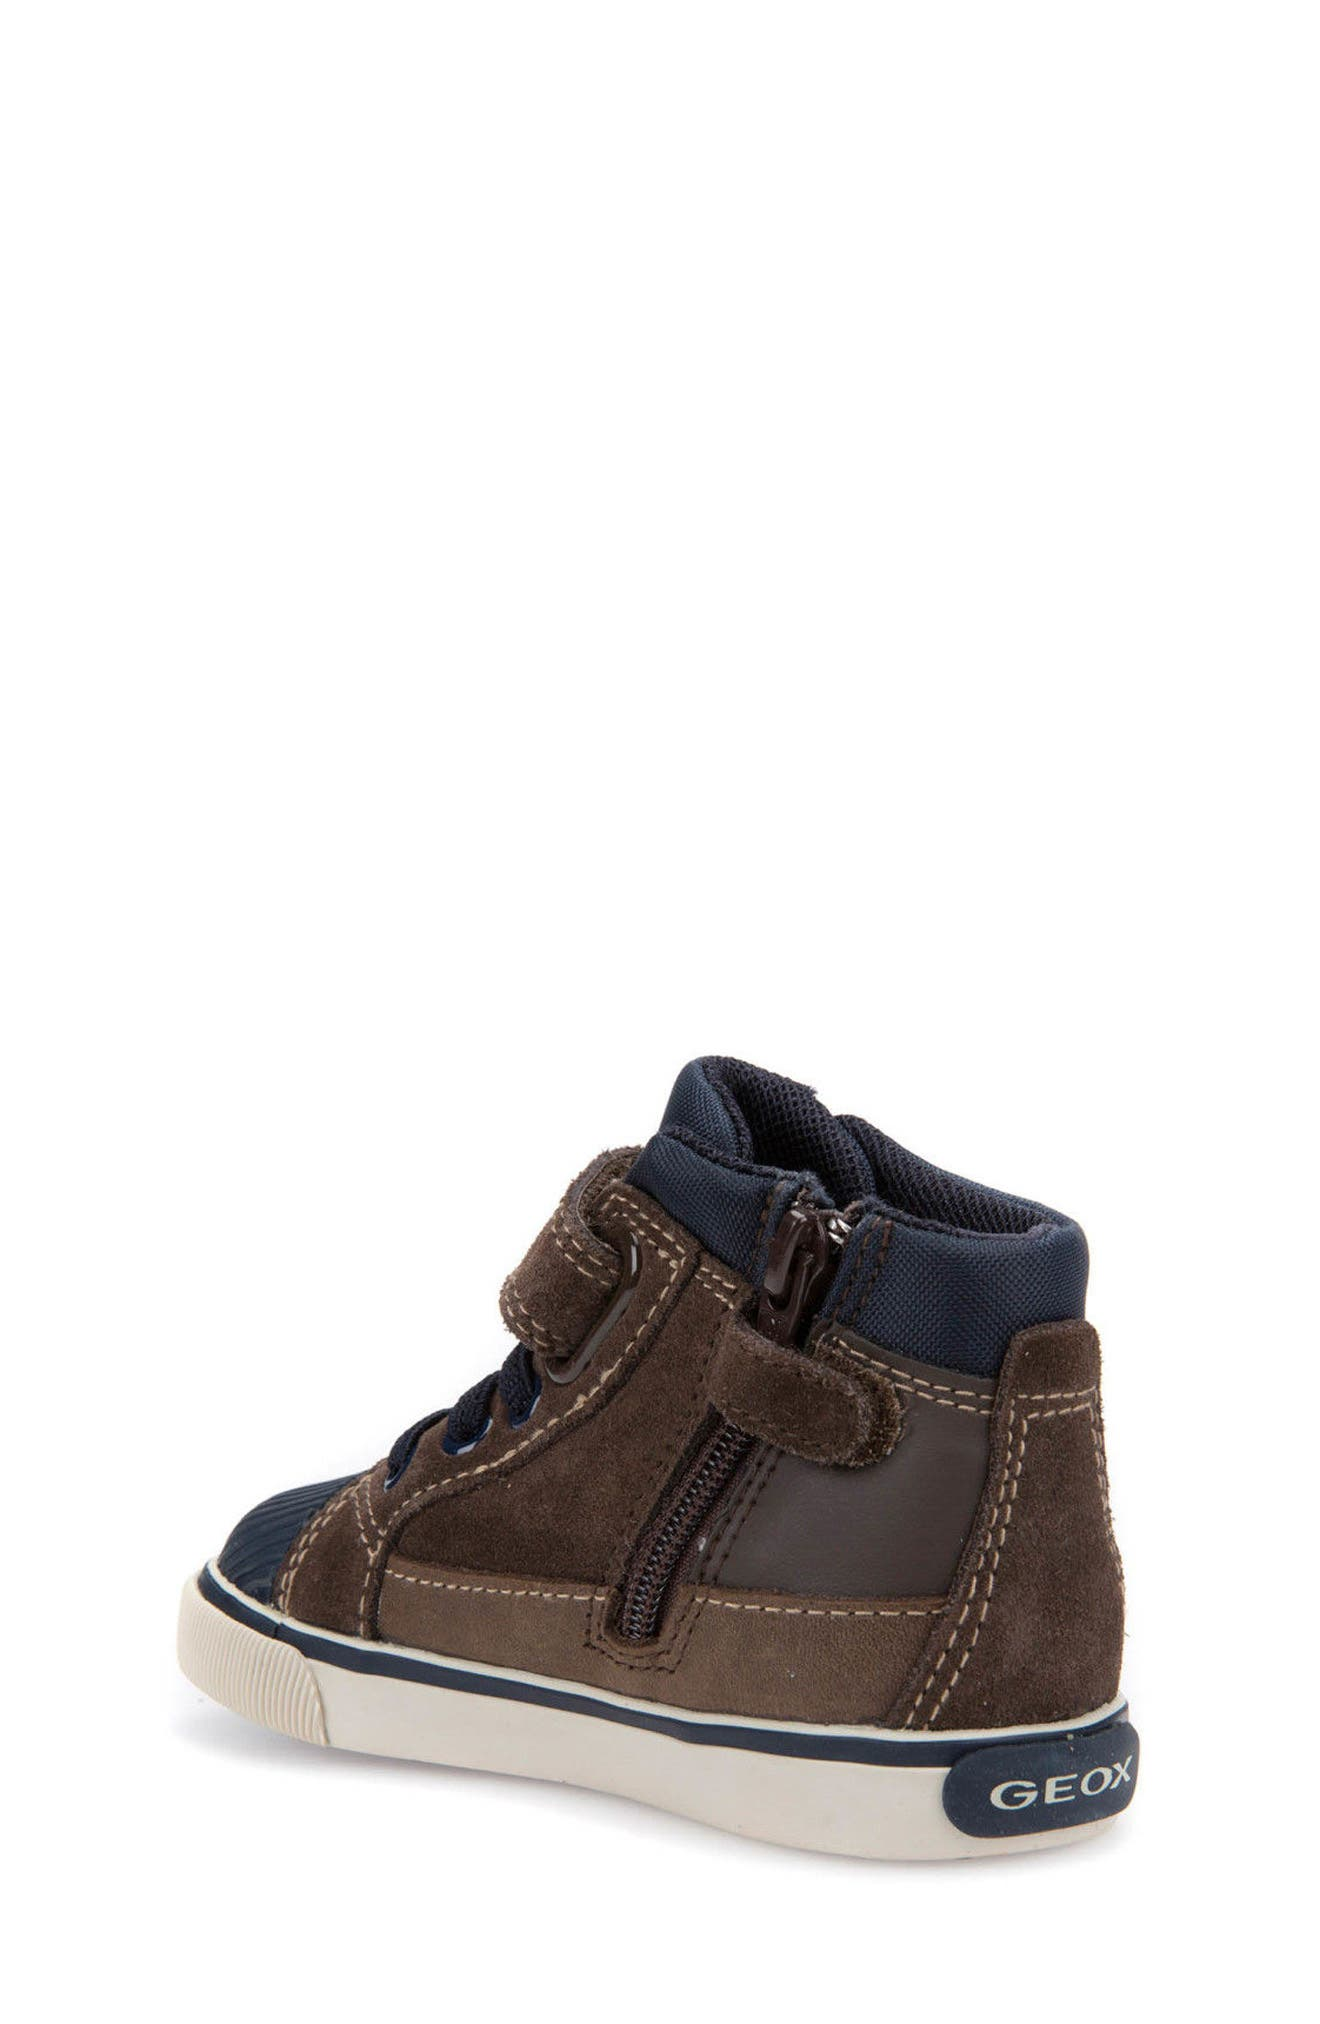 'Kiwi' High Top Sneaker,                             Alternate thumbnail 2, color,                             Chestnut/ Navy